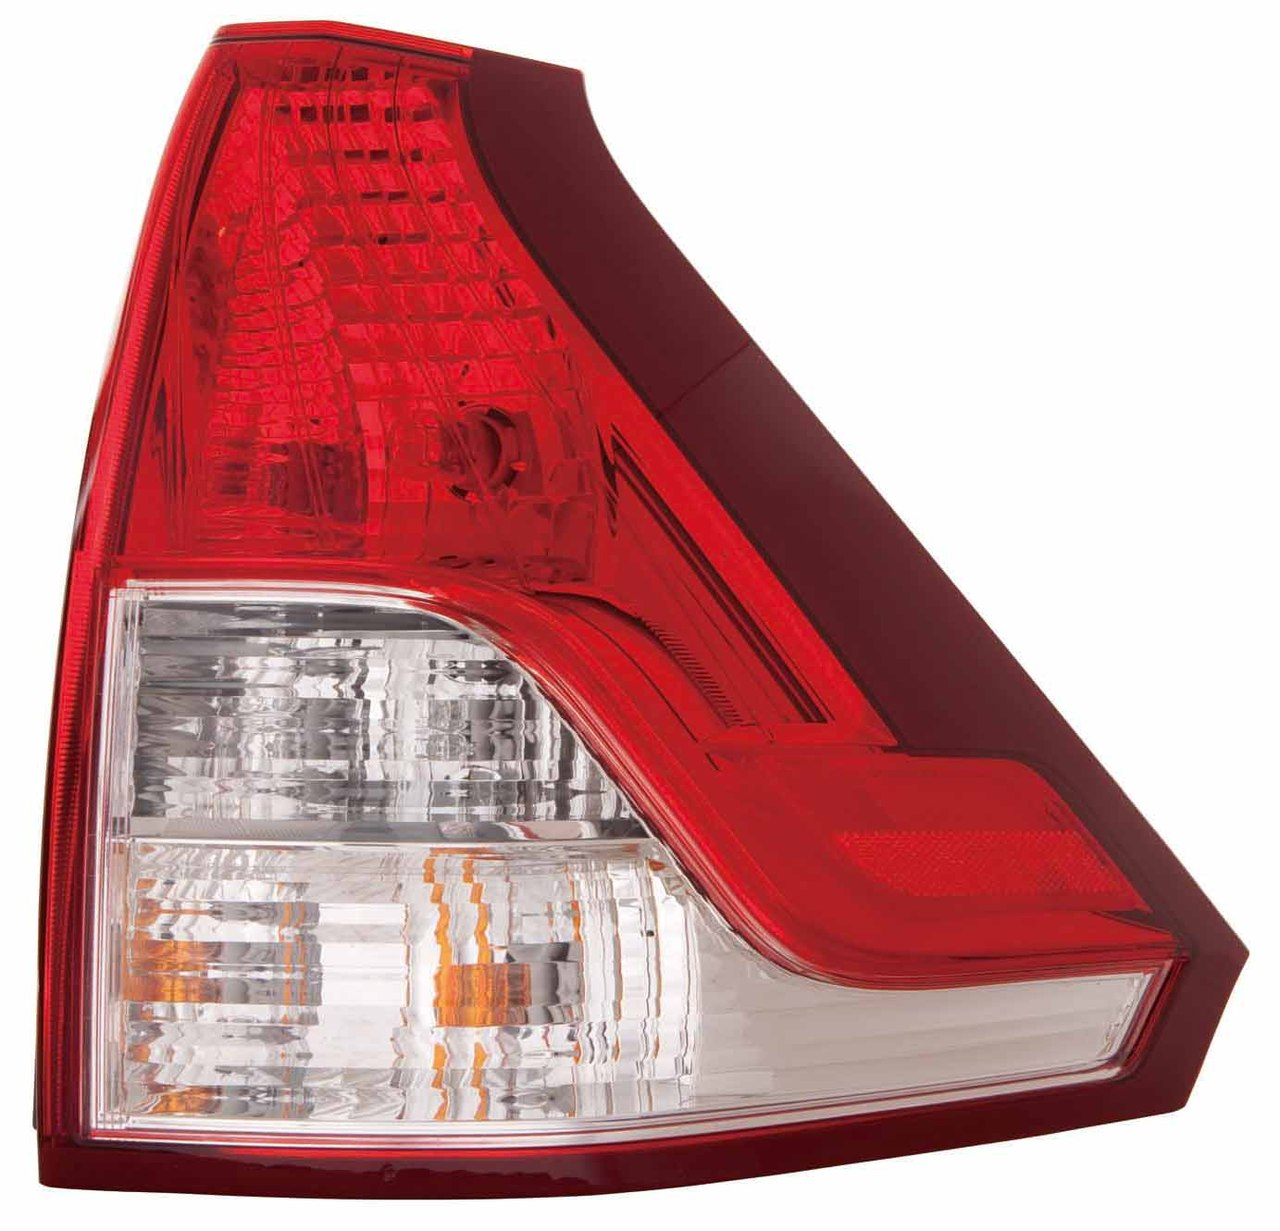 Honda CRV 2012 2013 2014 tail light right passenger